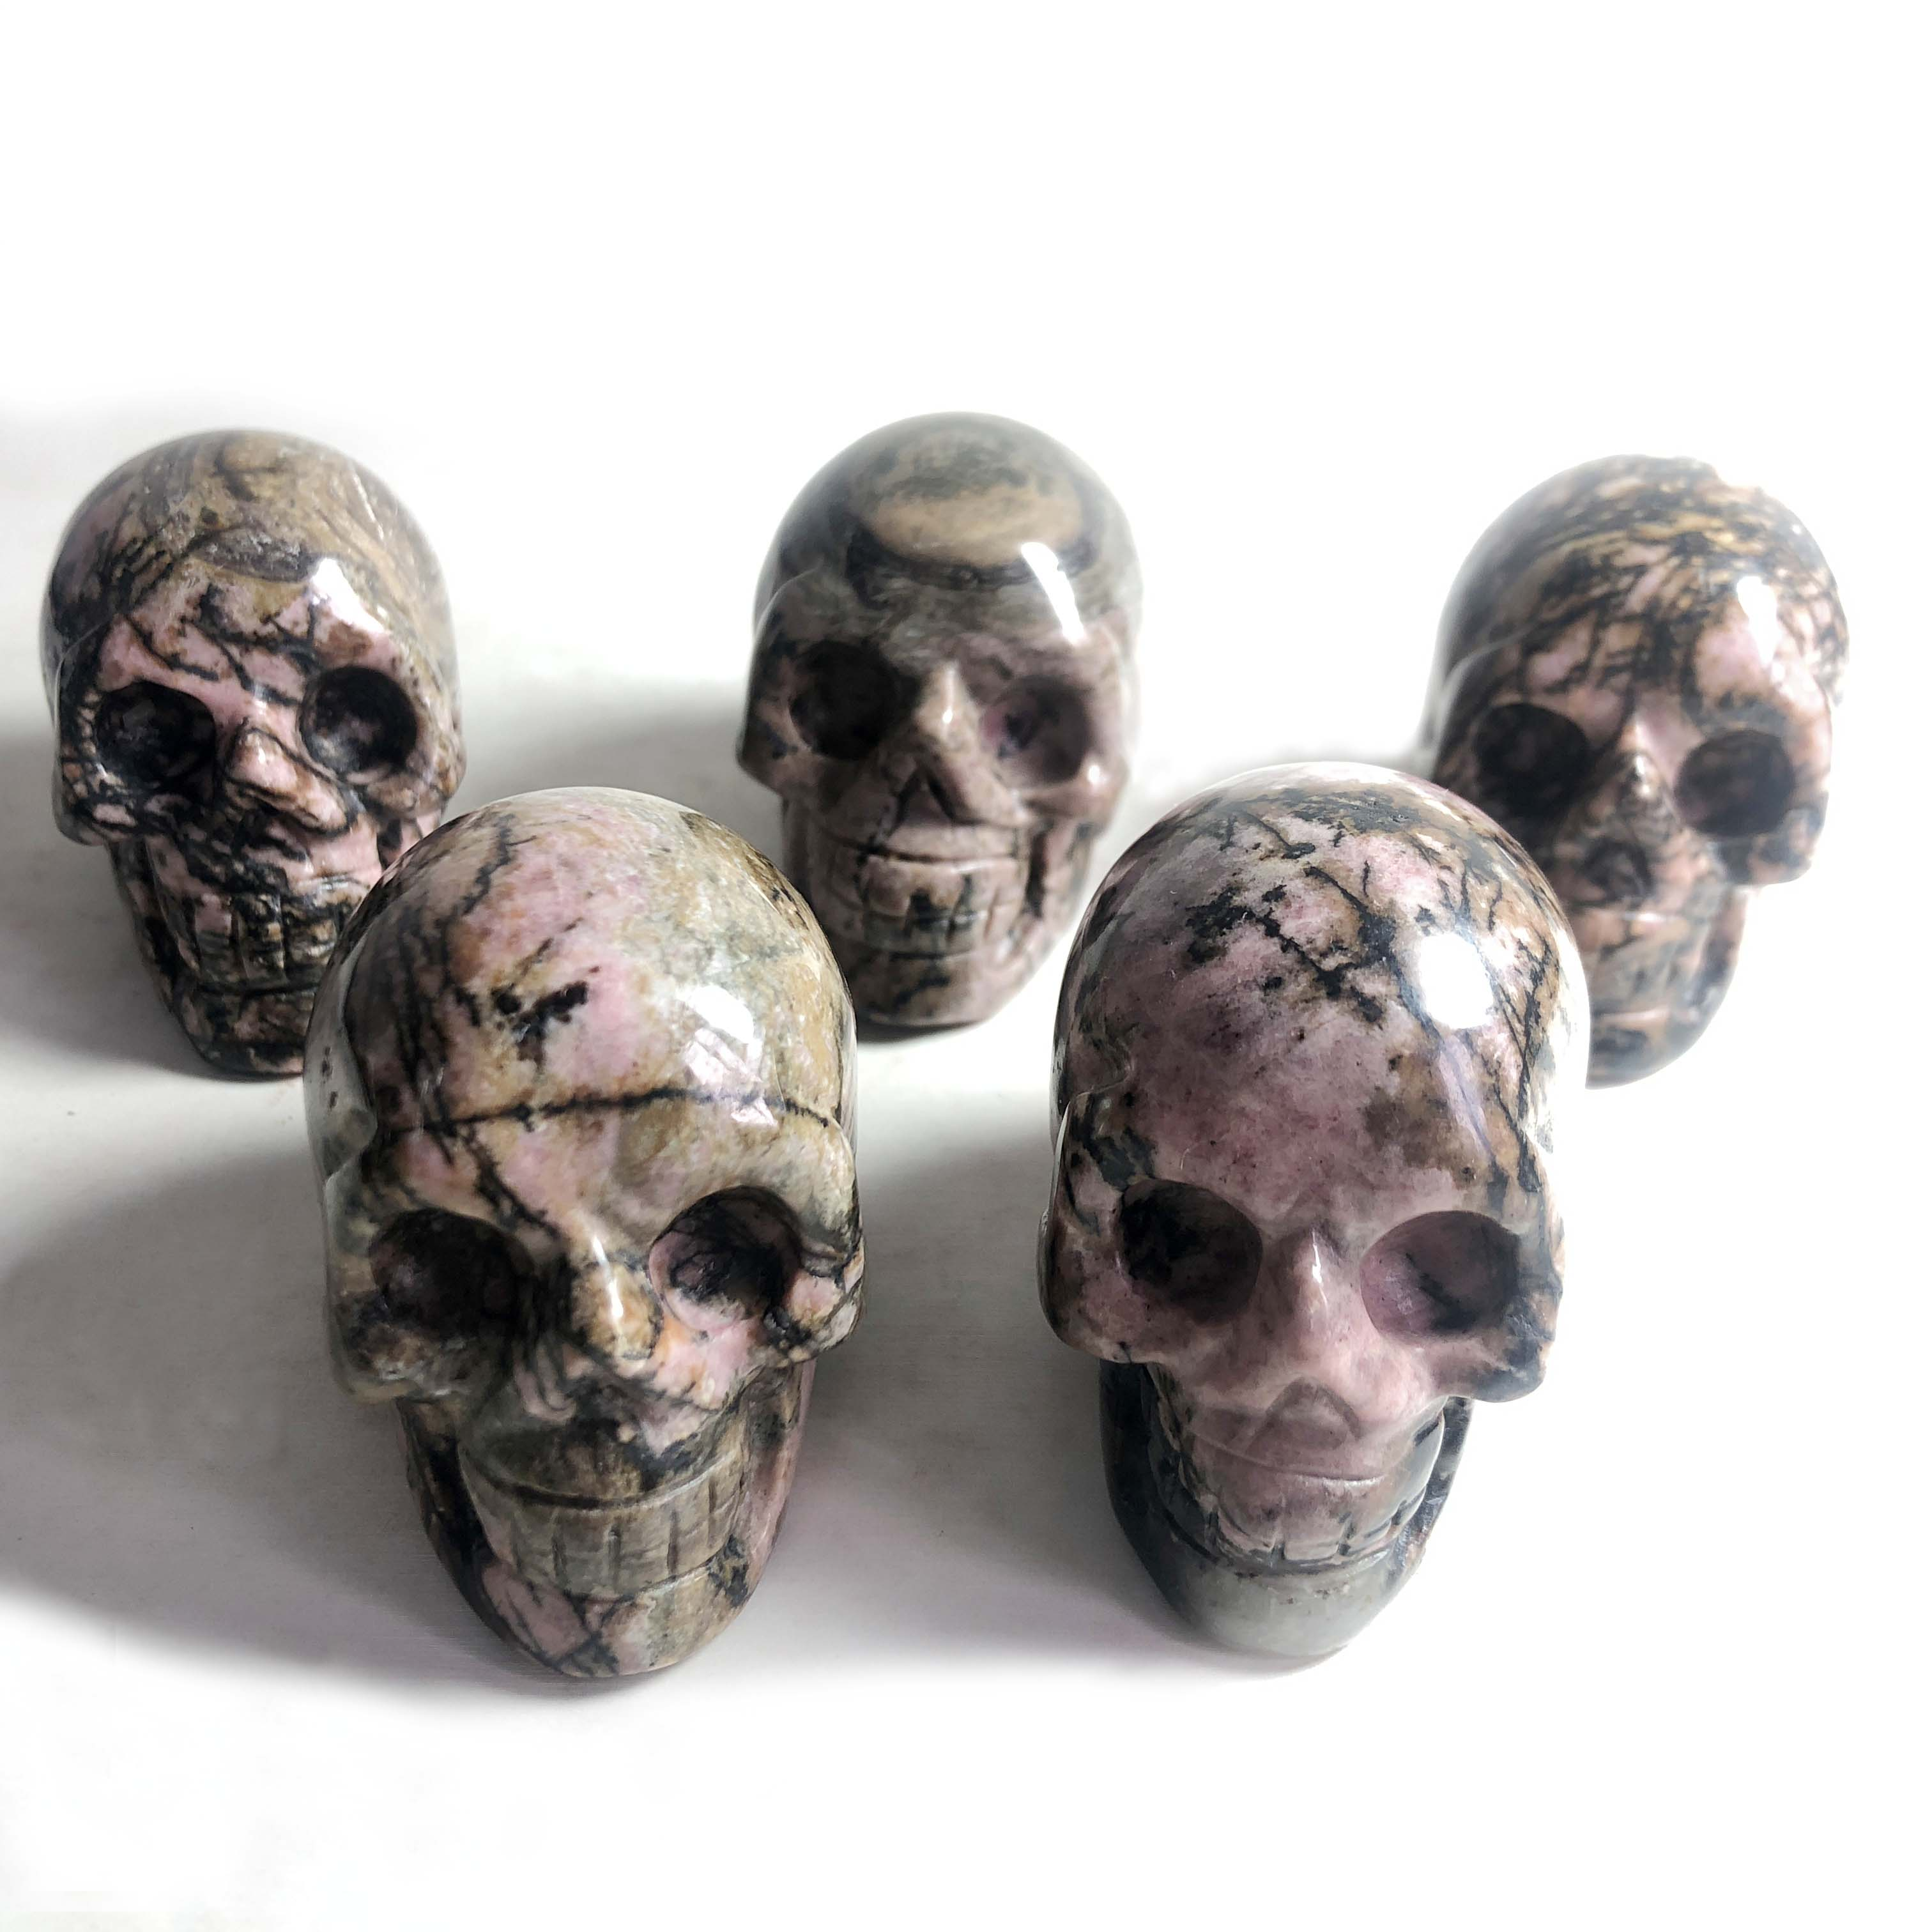 Free Shipping! Natural Rhodonite Carved Skull Handmade Small Crystal Skull Healing Gemstones For Gifts Or Home Decoration XKF